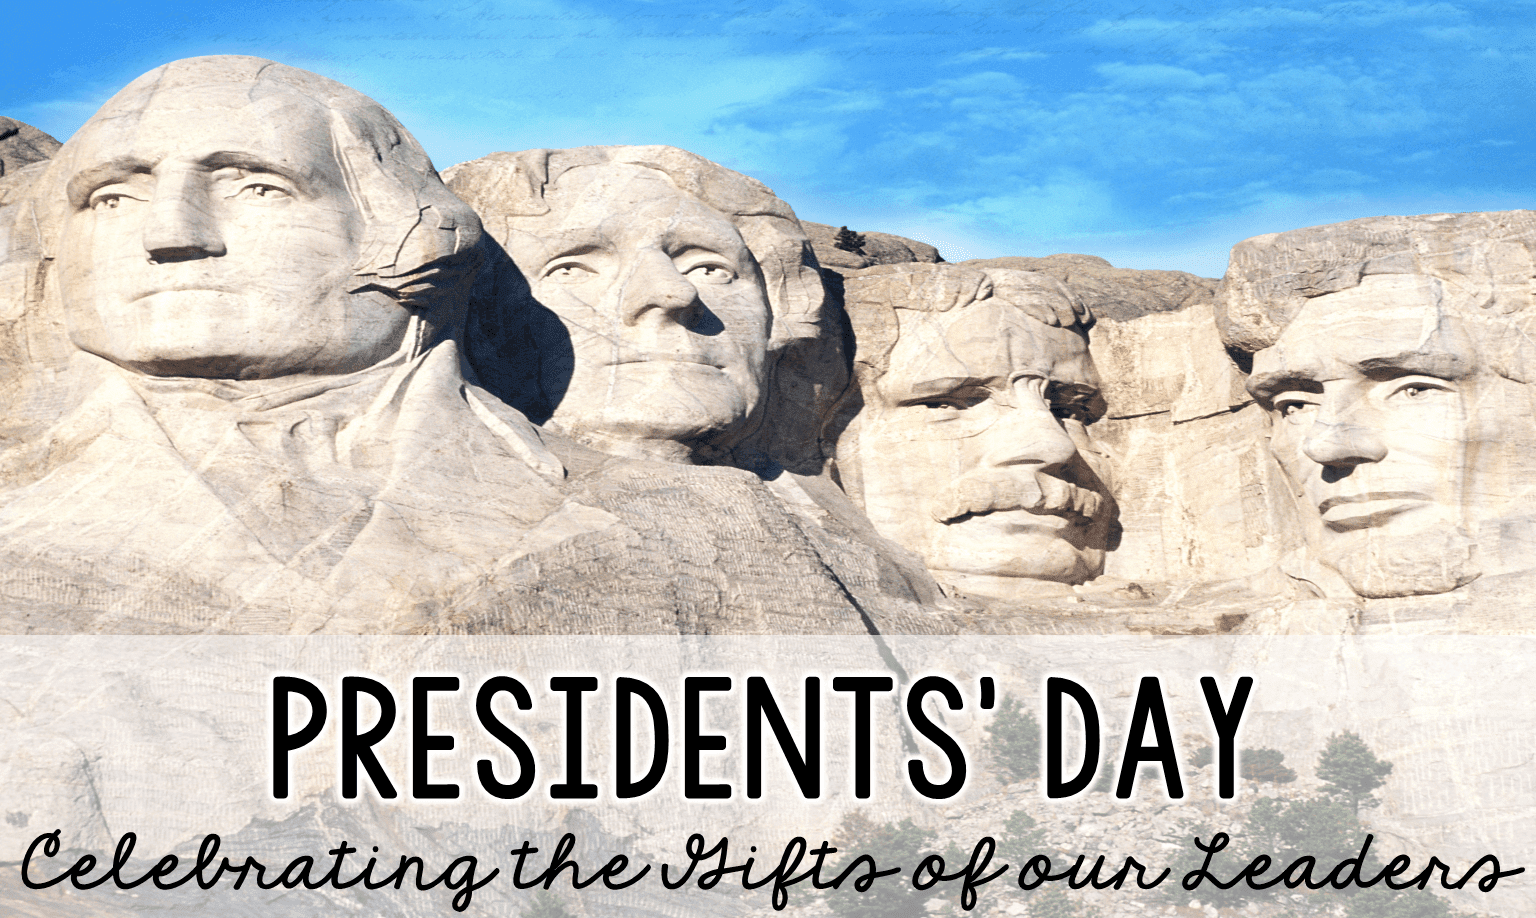 Presidents' Day is just around the corner and this great collection of ideas will help you celebrate and educate! Check out the book collections and teaching ideas.